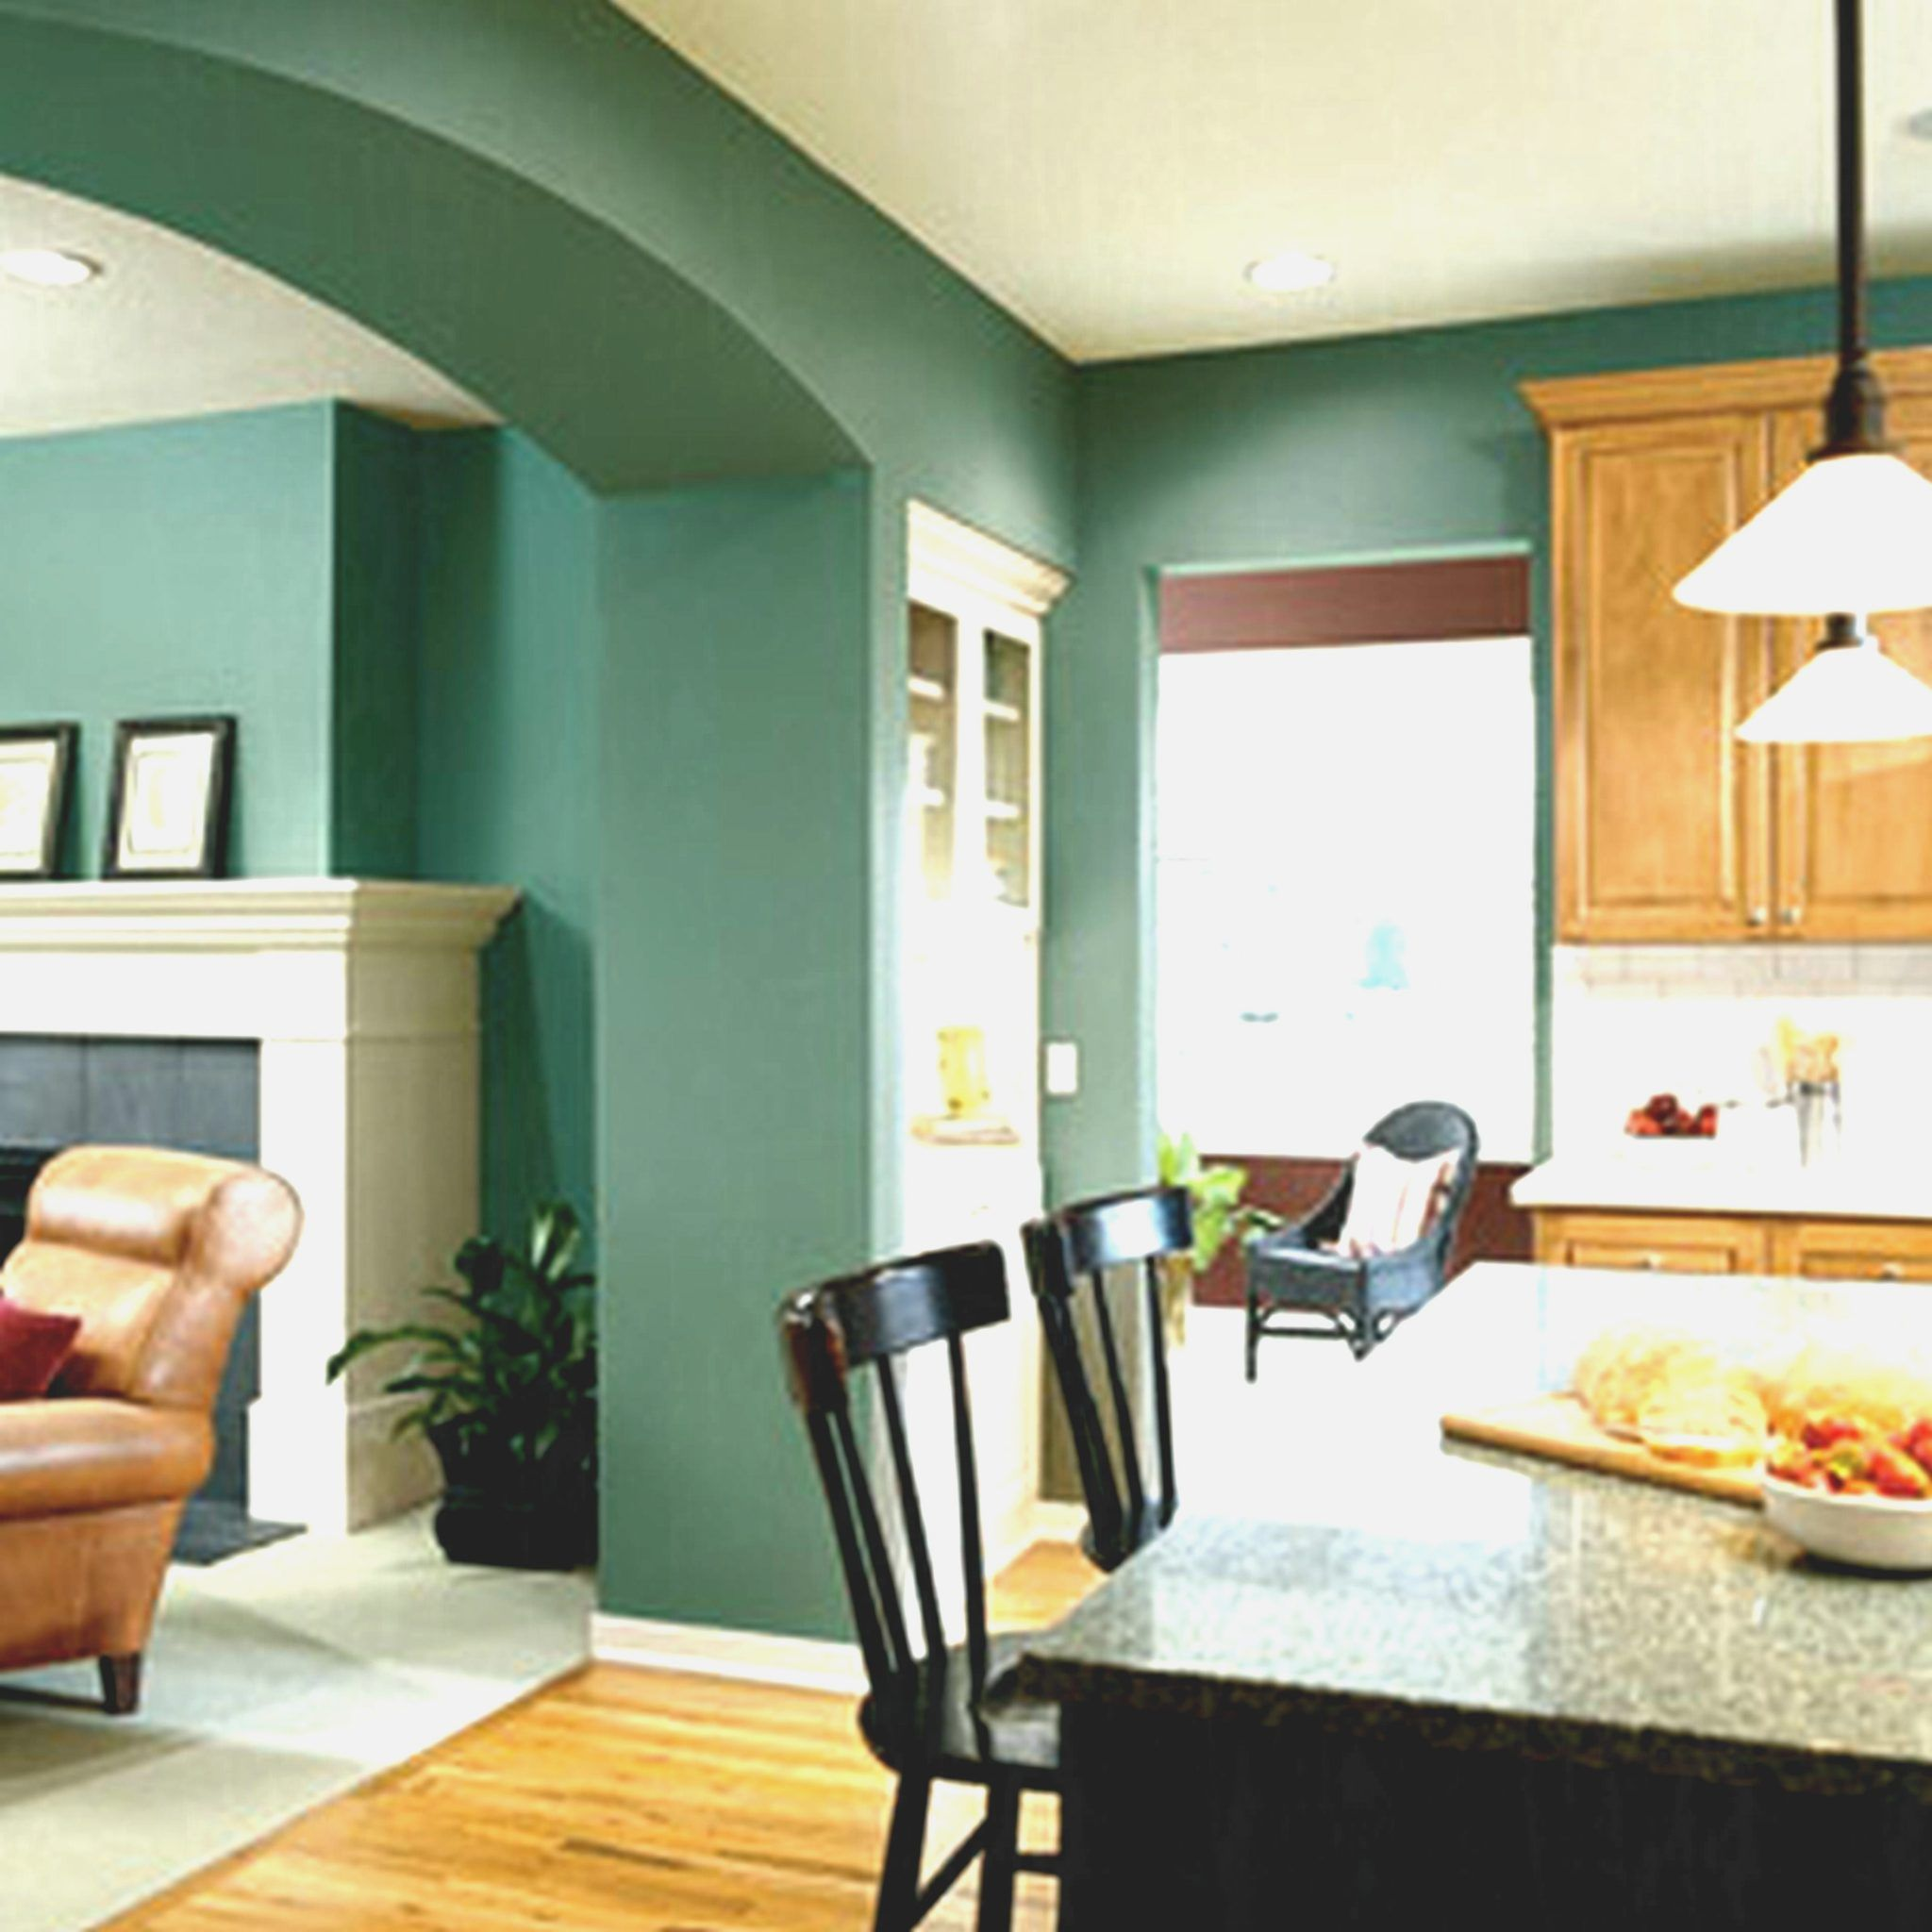 paint colors for living room walls best color for living room rh pinterest ca paint colors for living room walls with light furniture paint colors for living room walls with light furniture